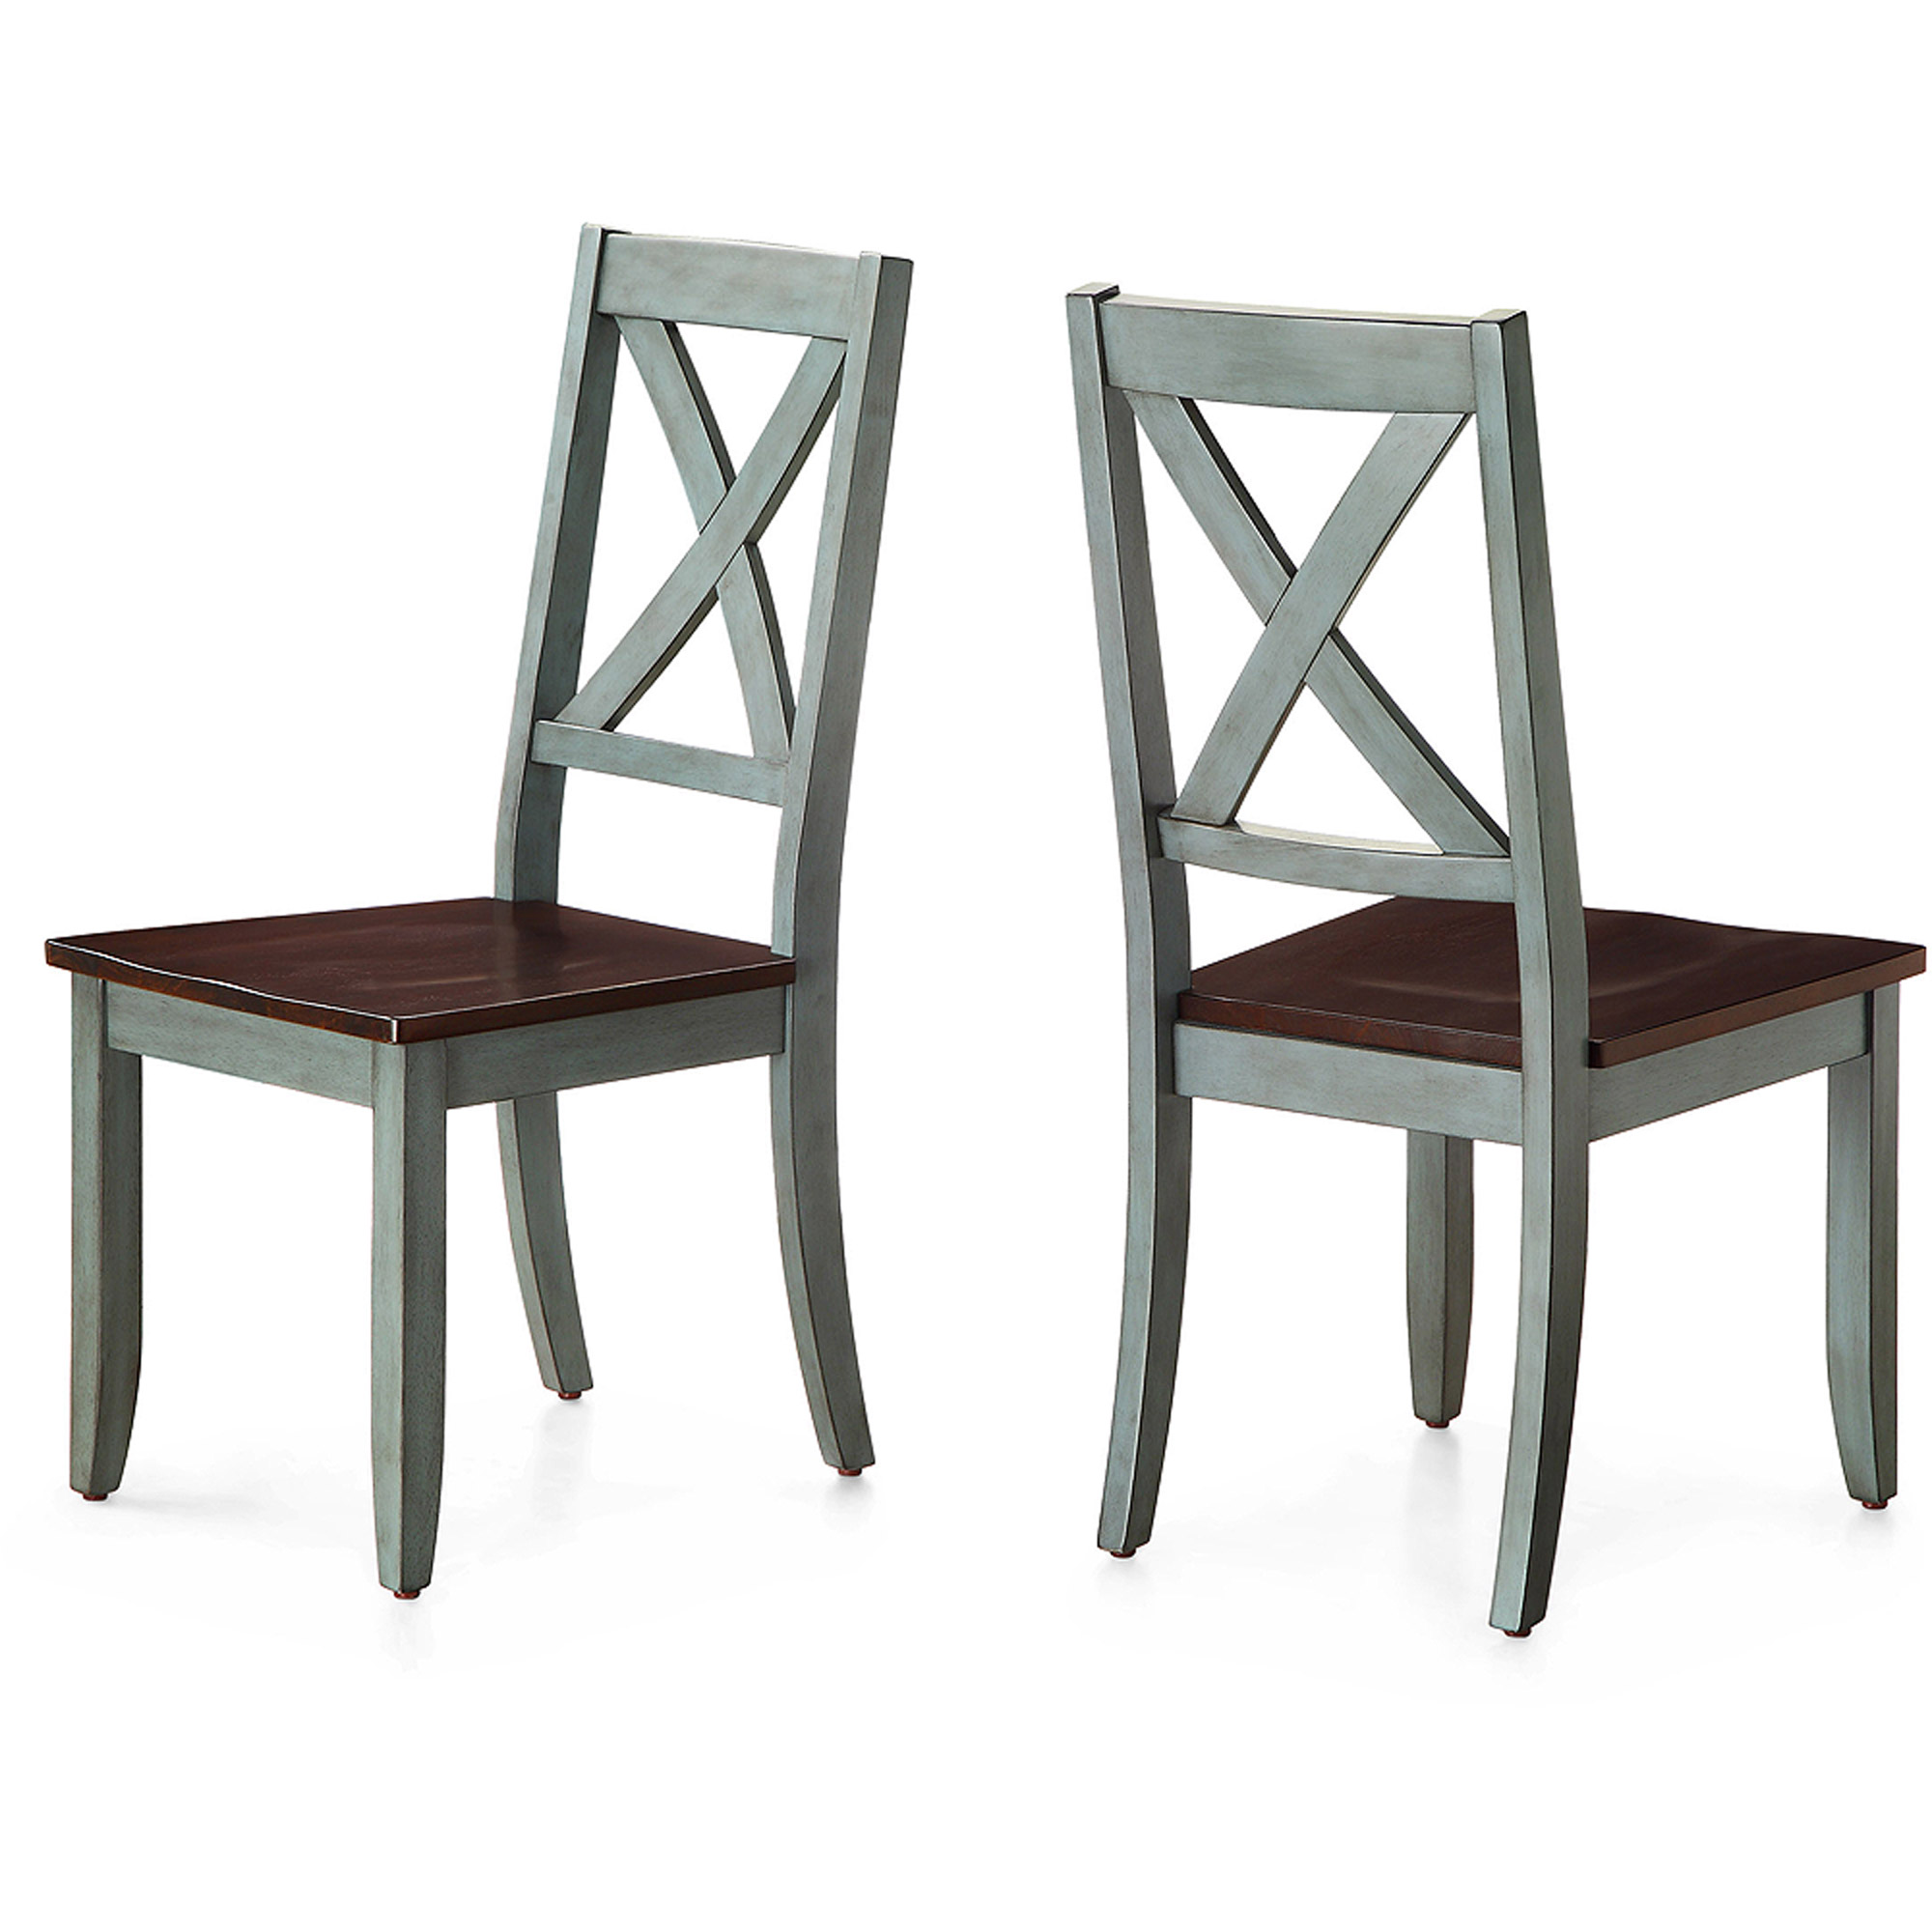 Dining Chair Set Of 2 Better Homes And Gardens Maddox Crossing Dining Chair Blue Set Of 2